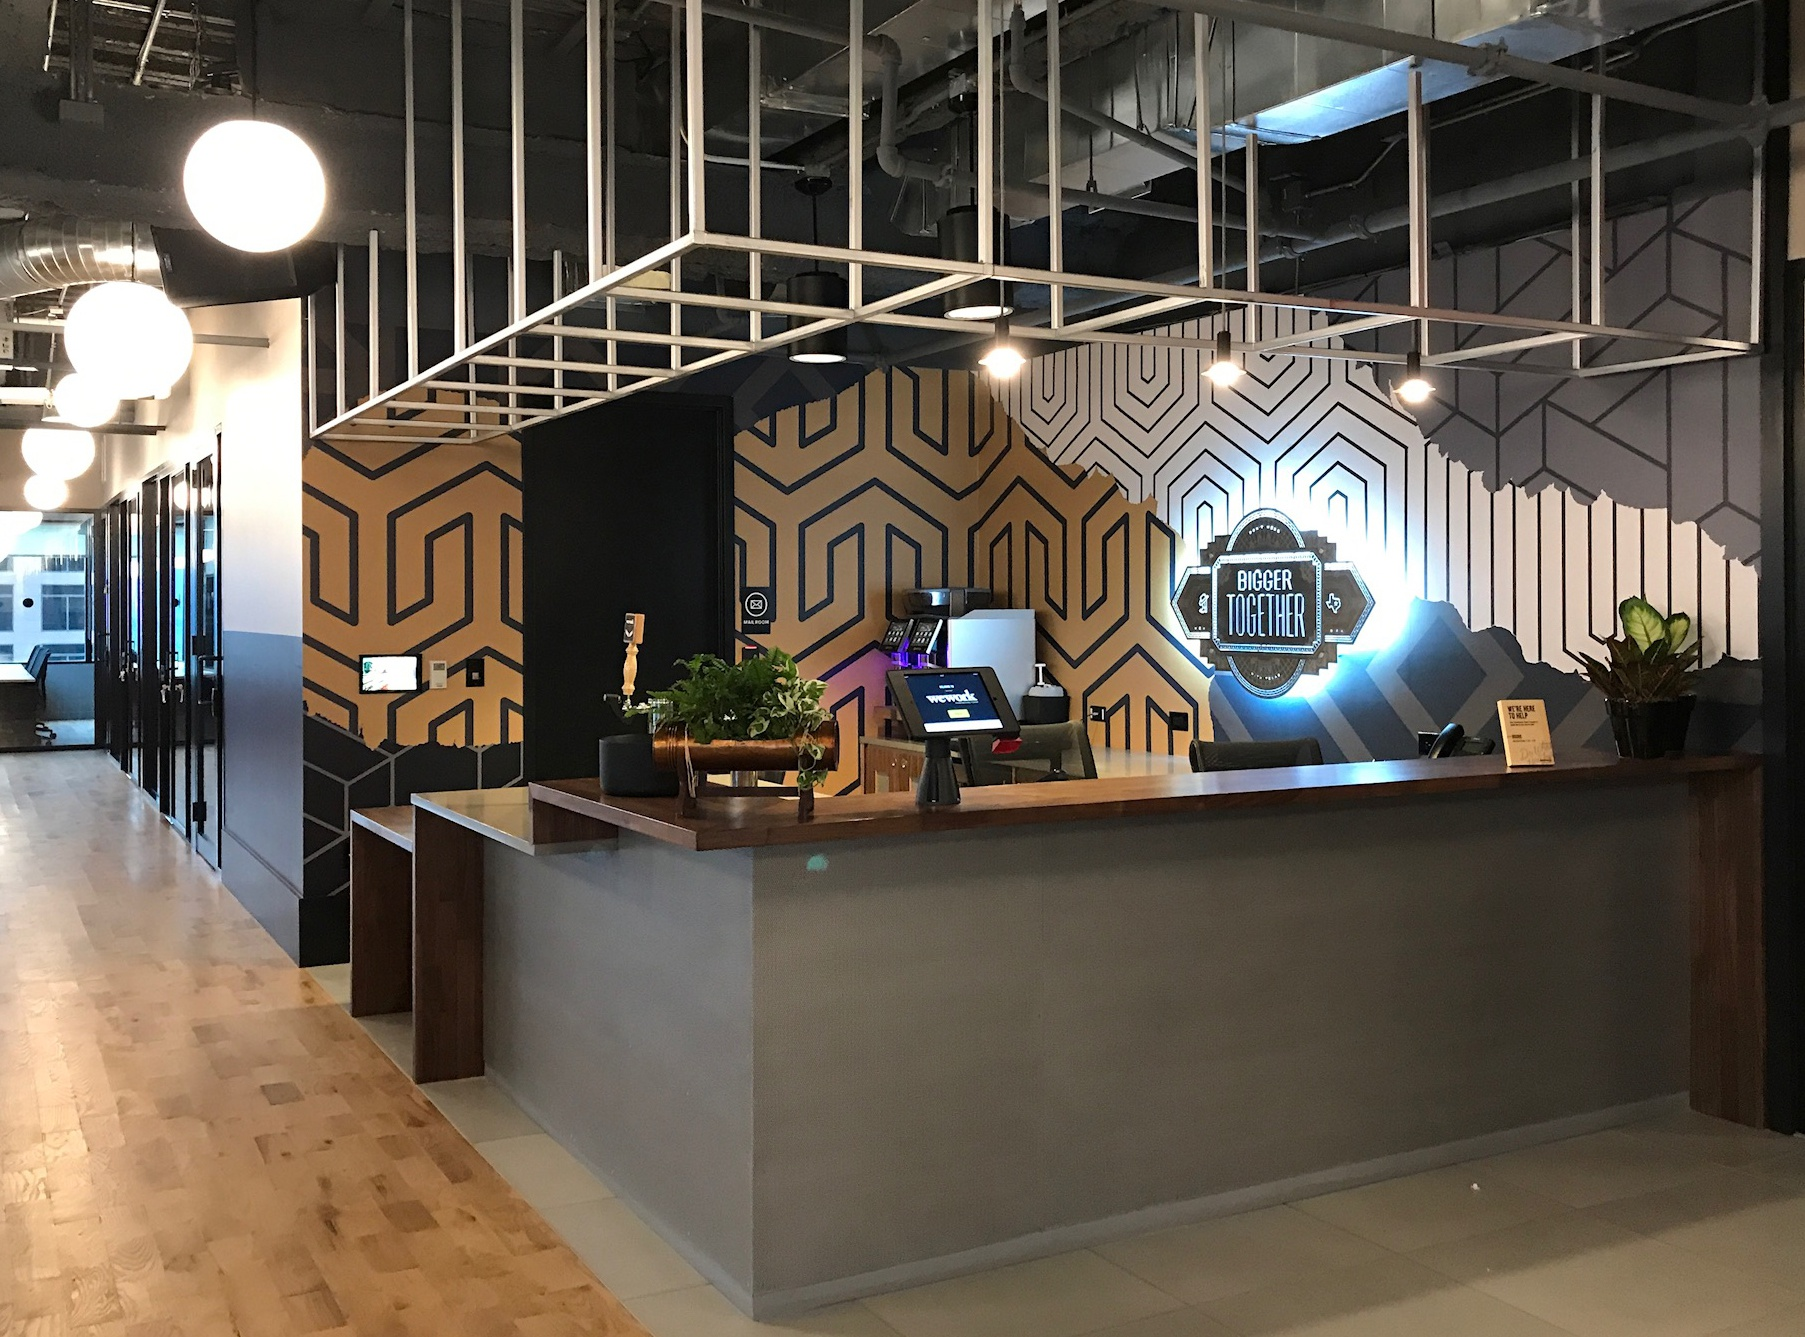 Wework dallas biggertogether 1